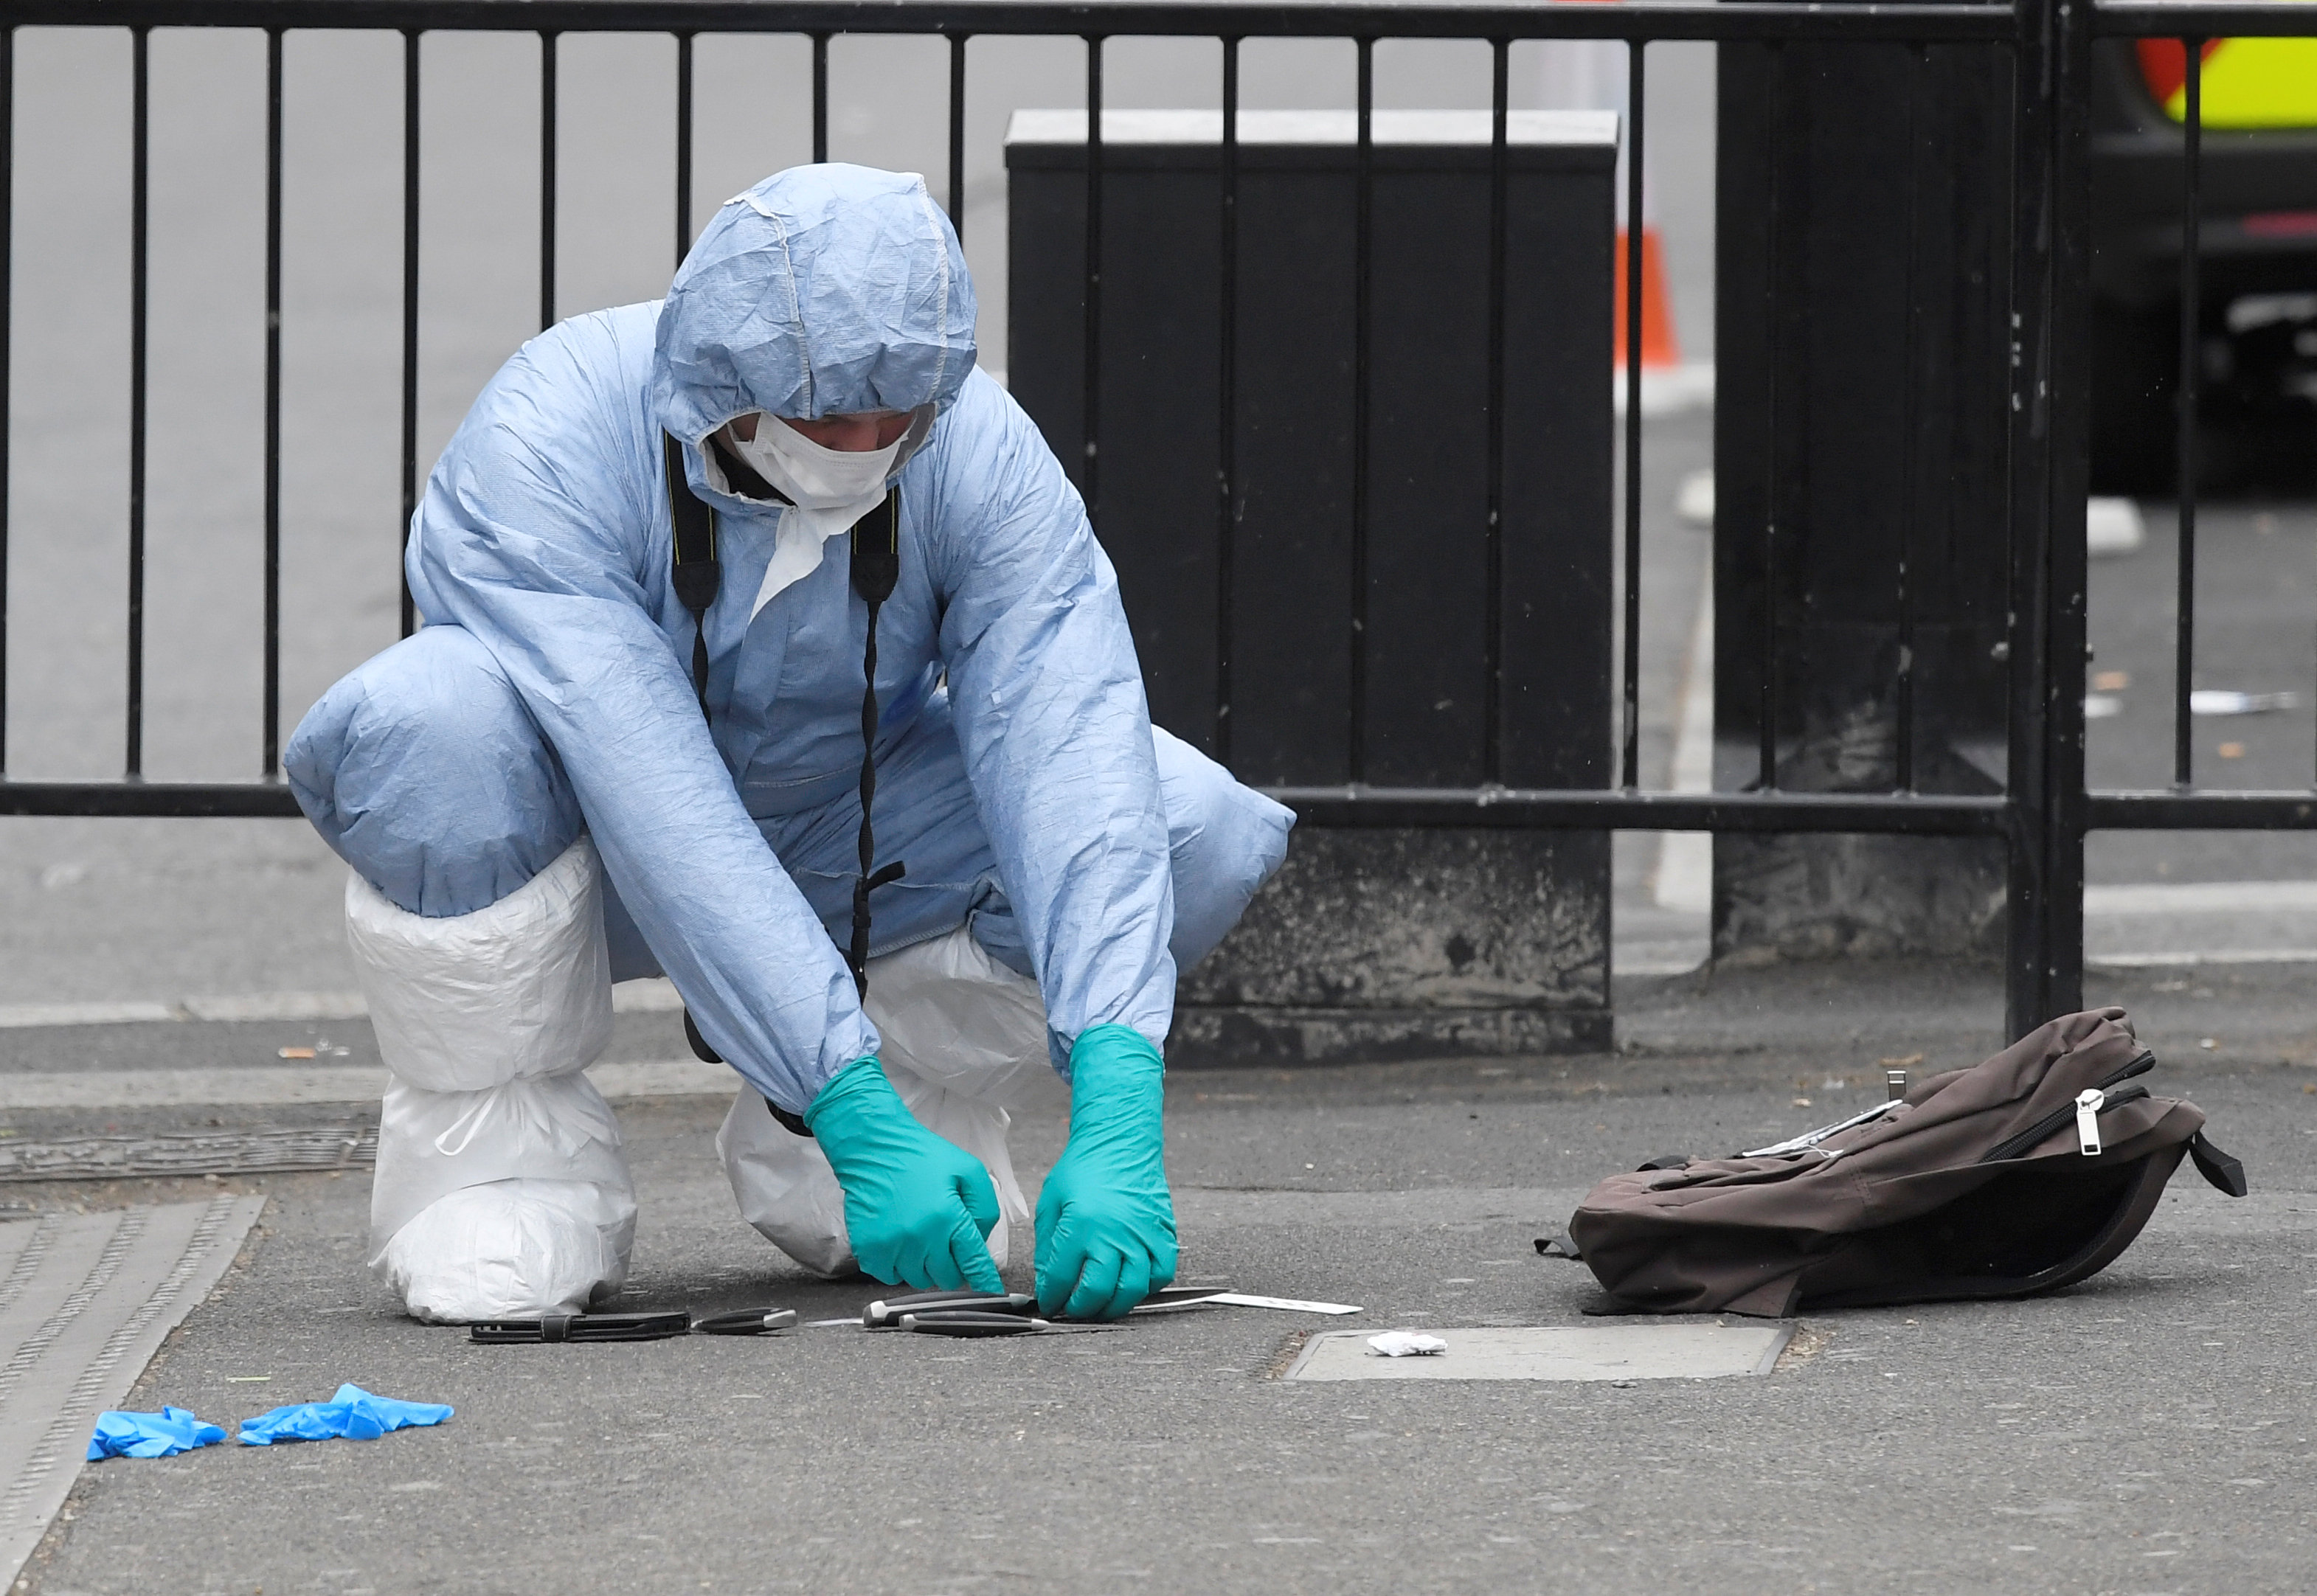 A forensic investigator recovers knives after man was arrested on Whitehall in Westminster, central London, Britain on April 27, 2017. (REUTERS/Toby Melville)